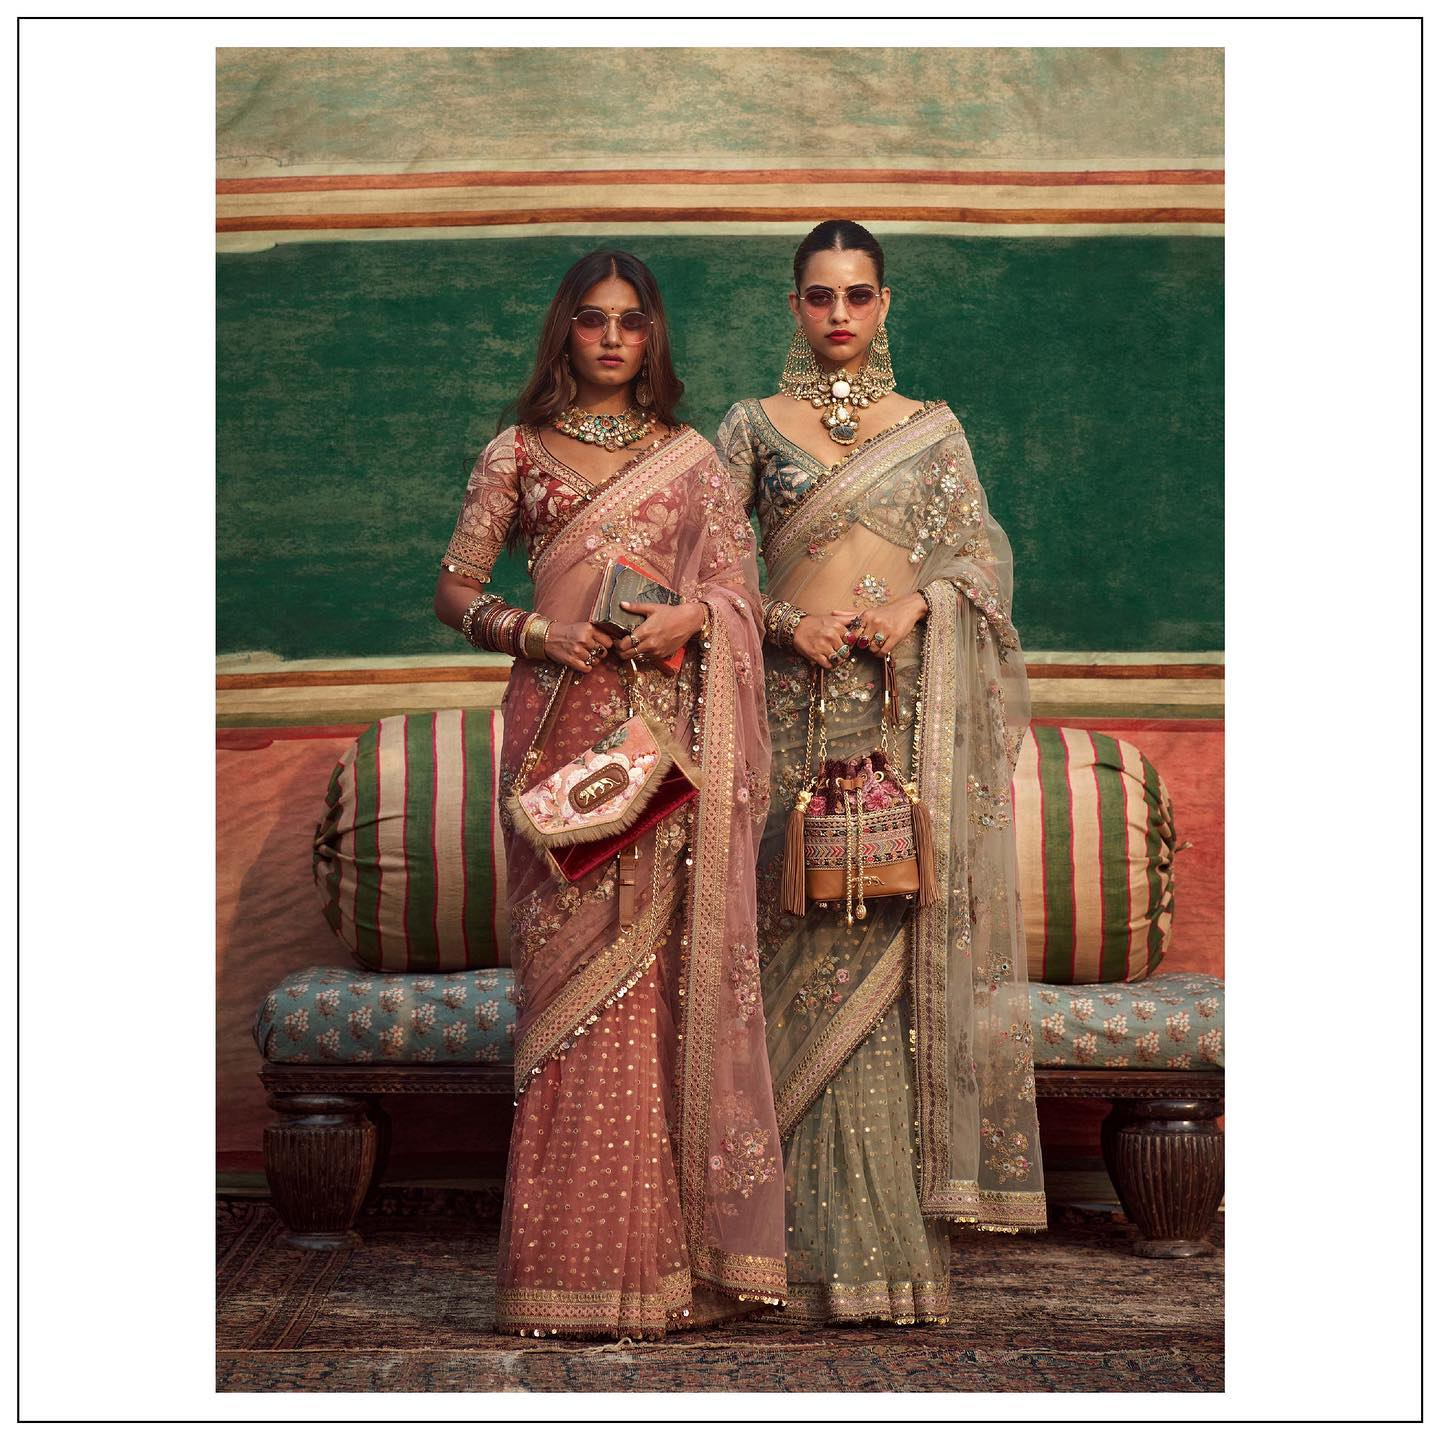 Beautiful wine and olive green color organza saree form Sabyasachi. The Sabyasachi 2021 Collection.   For all product related queries please email at customerservice@sabyasachi.com 2021-09-29